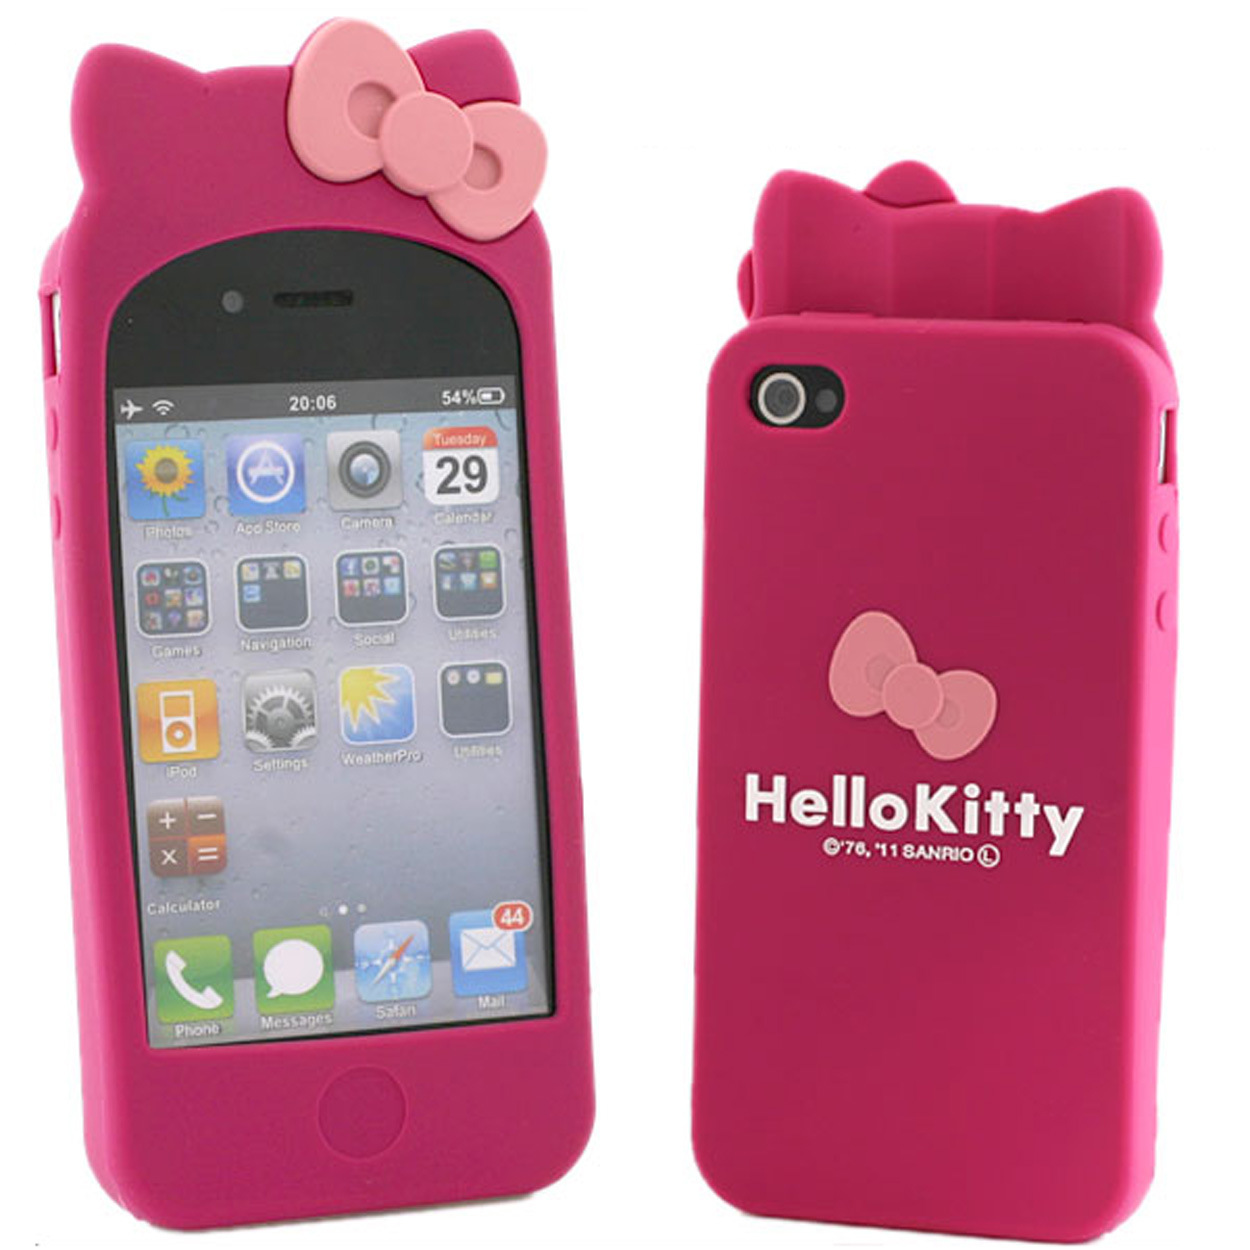 Thanks to the massive selection of cell phone cases and covers on eBay, it's never been easier to find the accessories that are perfect for you and your lifestyle.